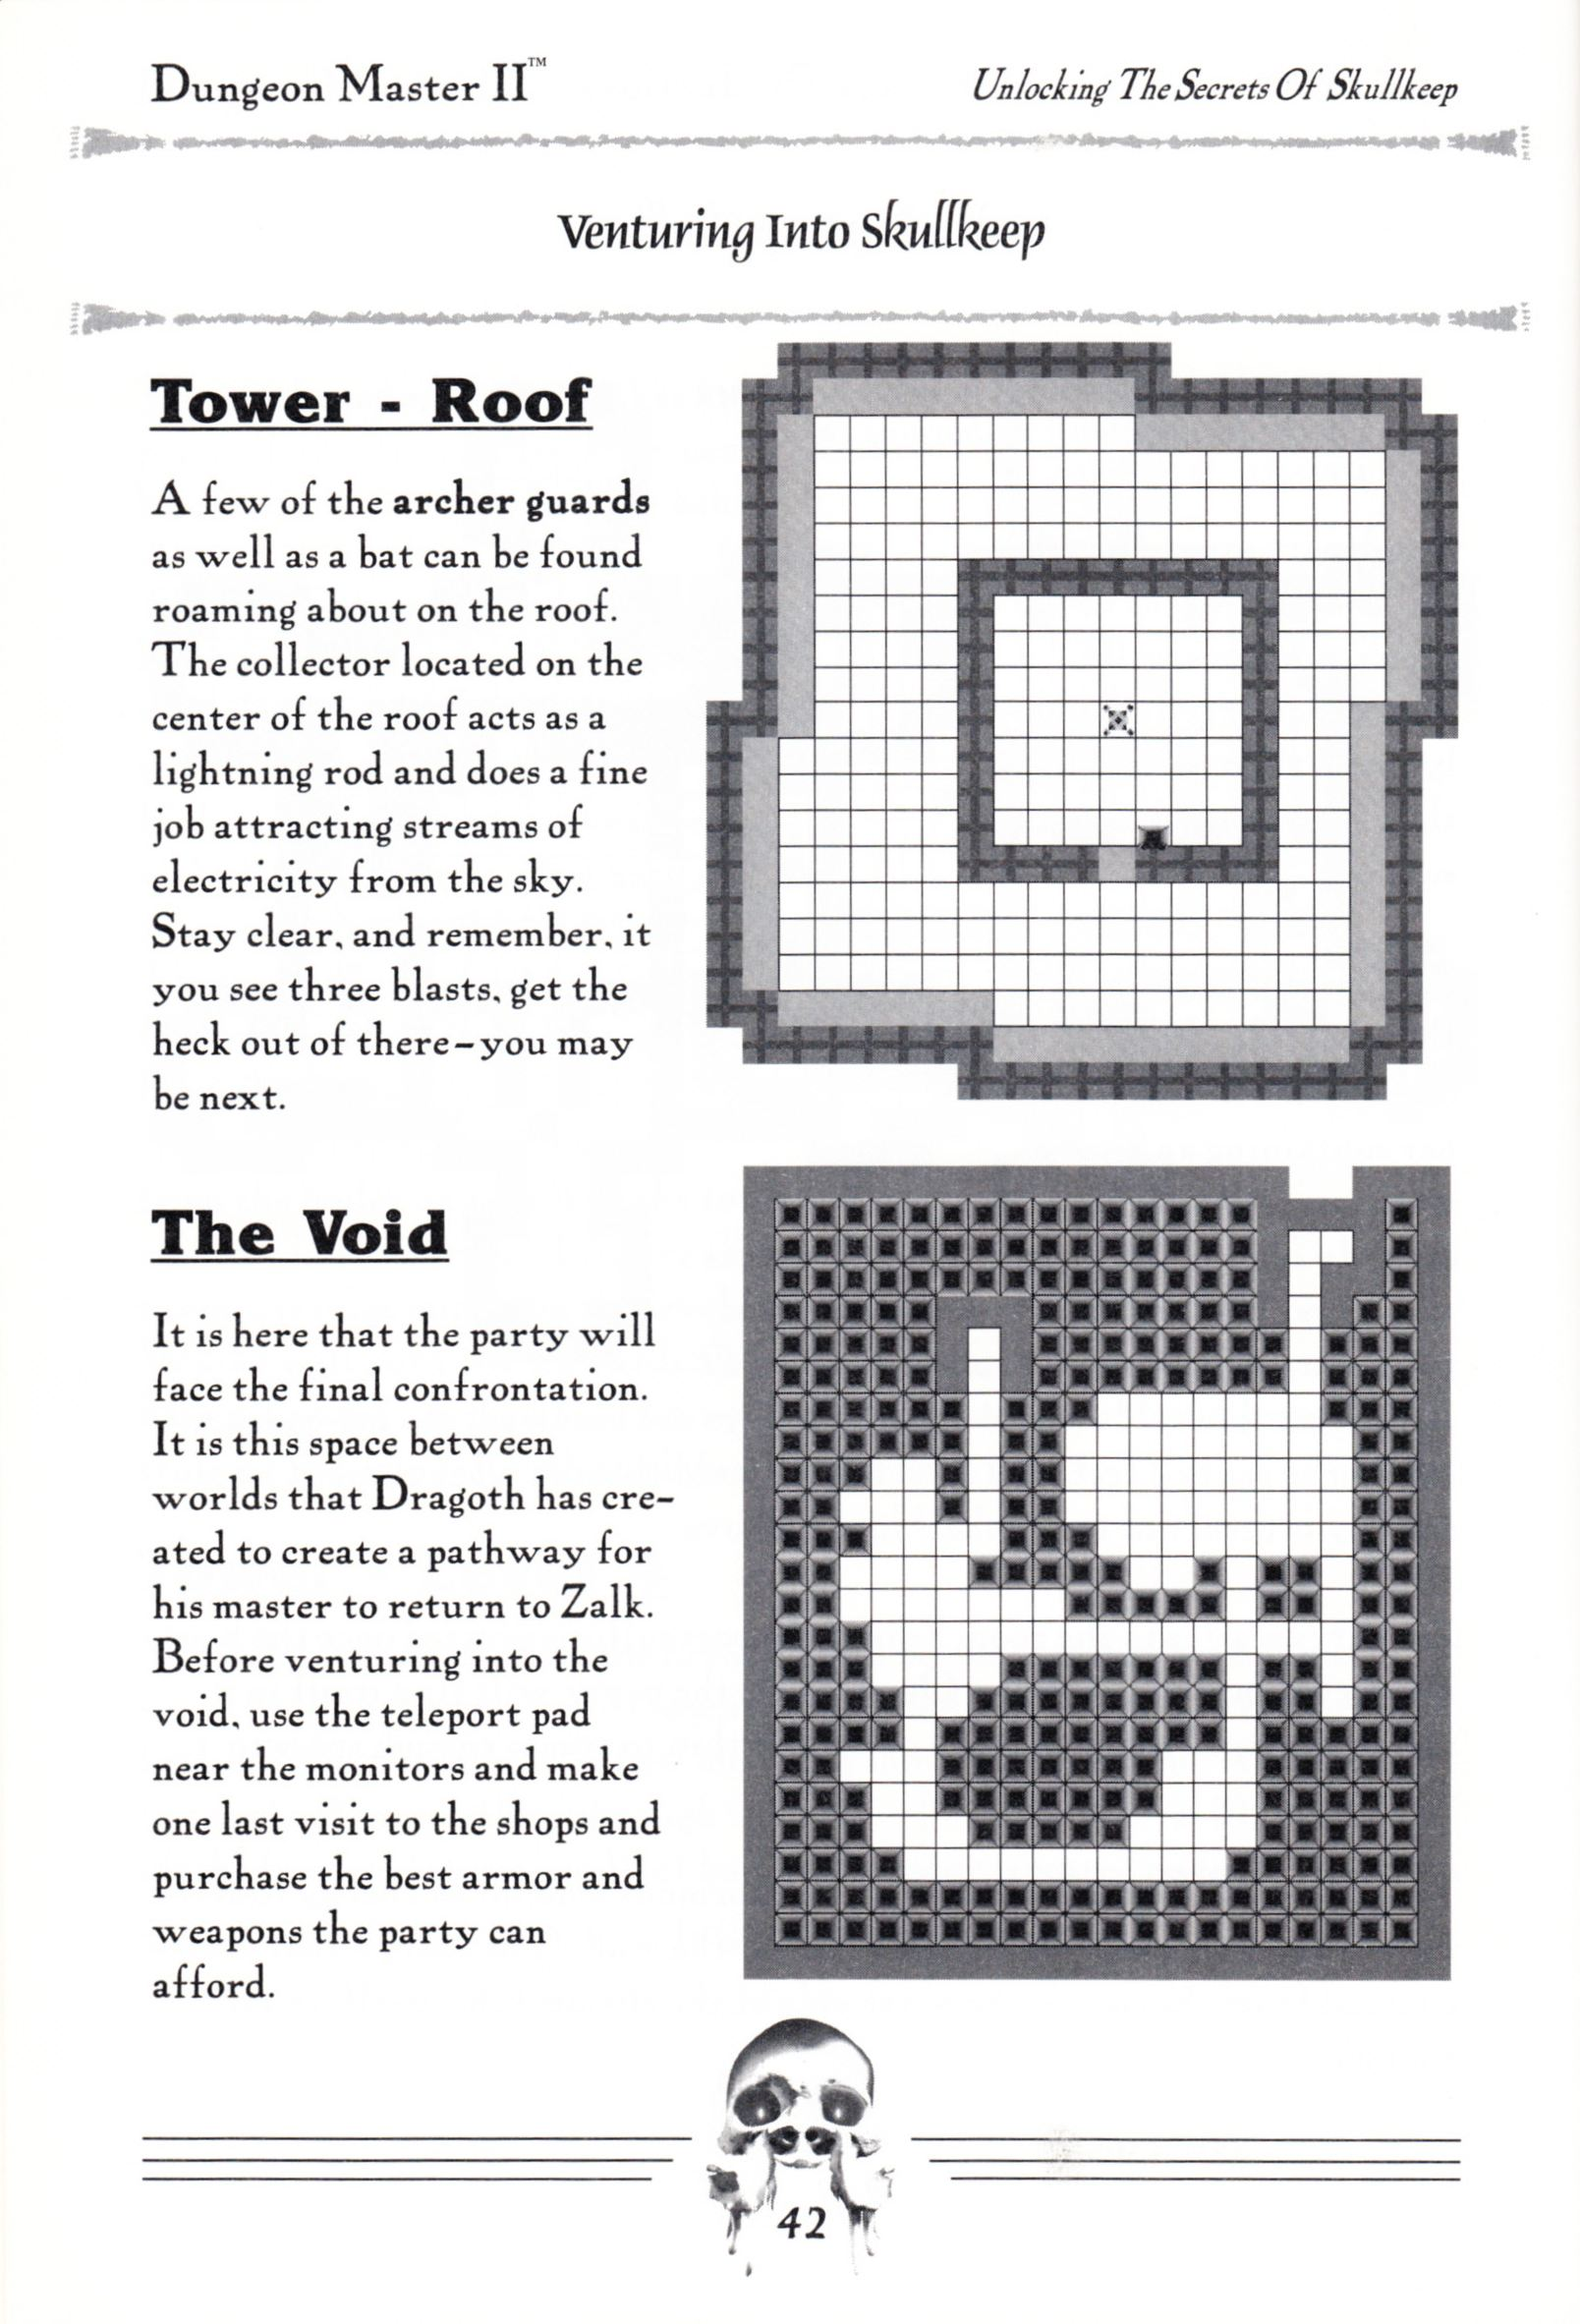 Hint Book - Dungeon Master II Clue Book - US - Page 044 - Scan